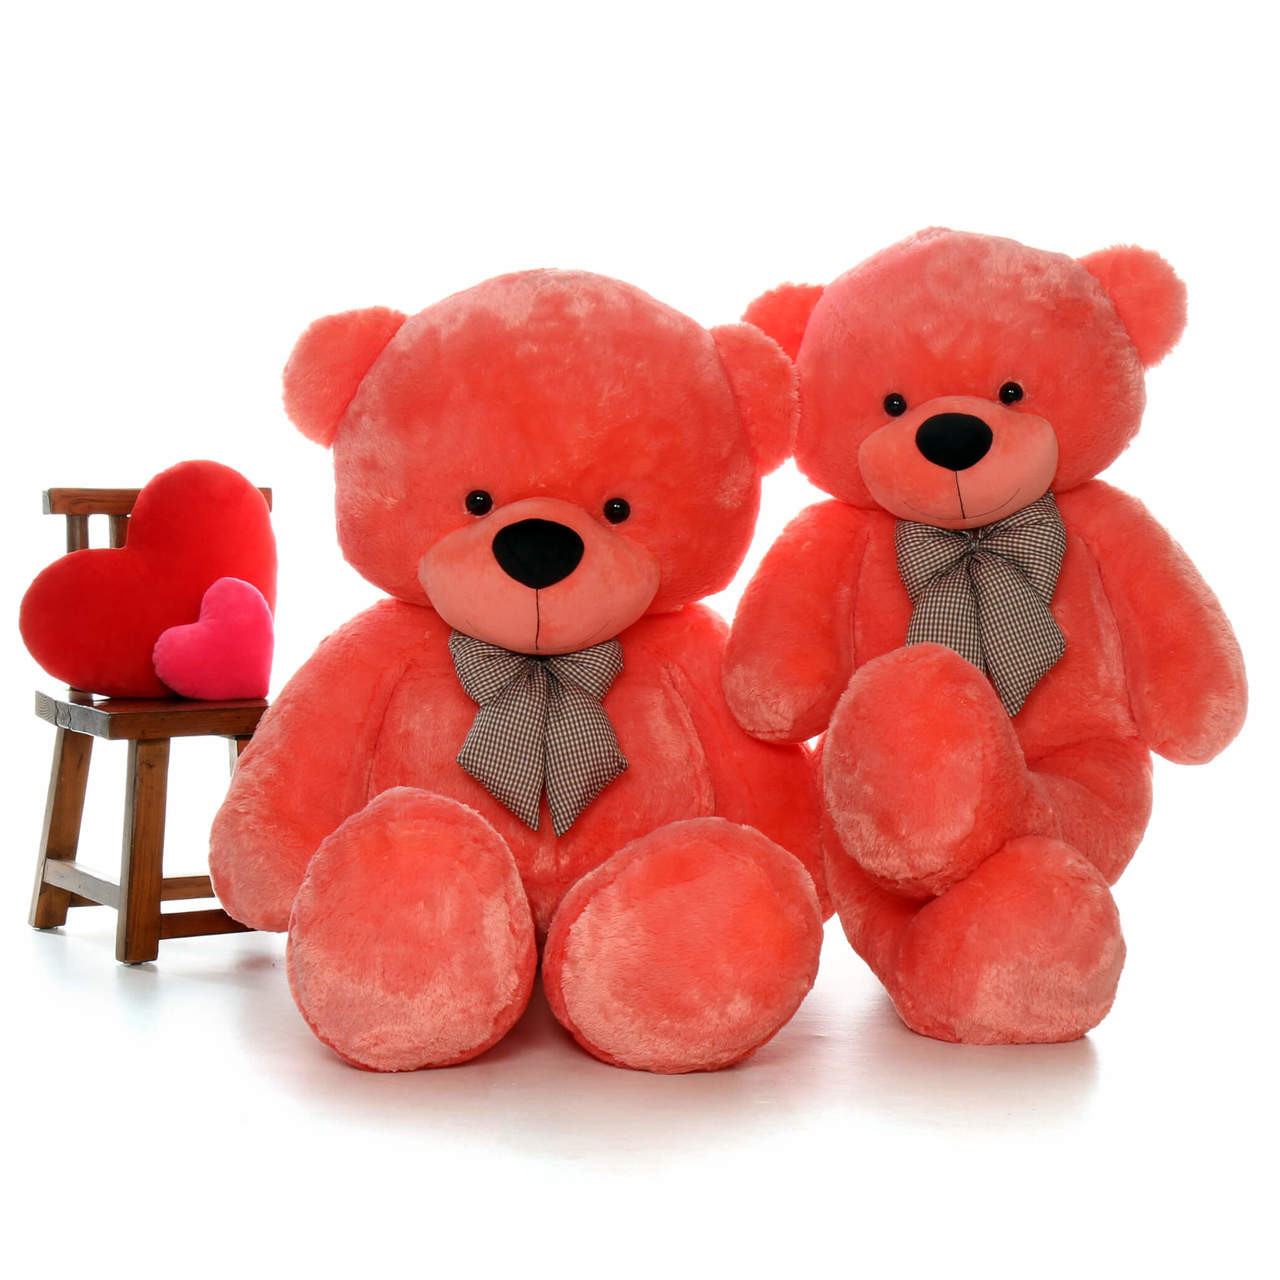 Perfect Valentine's Day Giant Bubble Gum Pink Teddy Bear